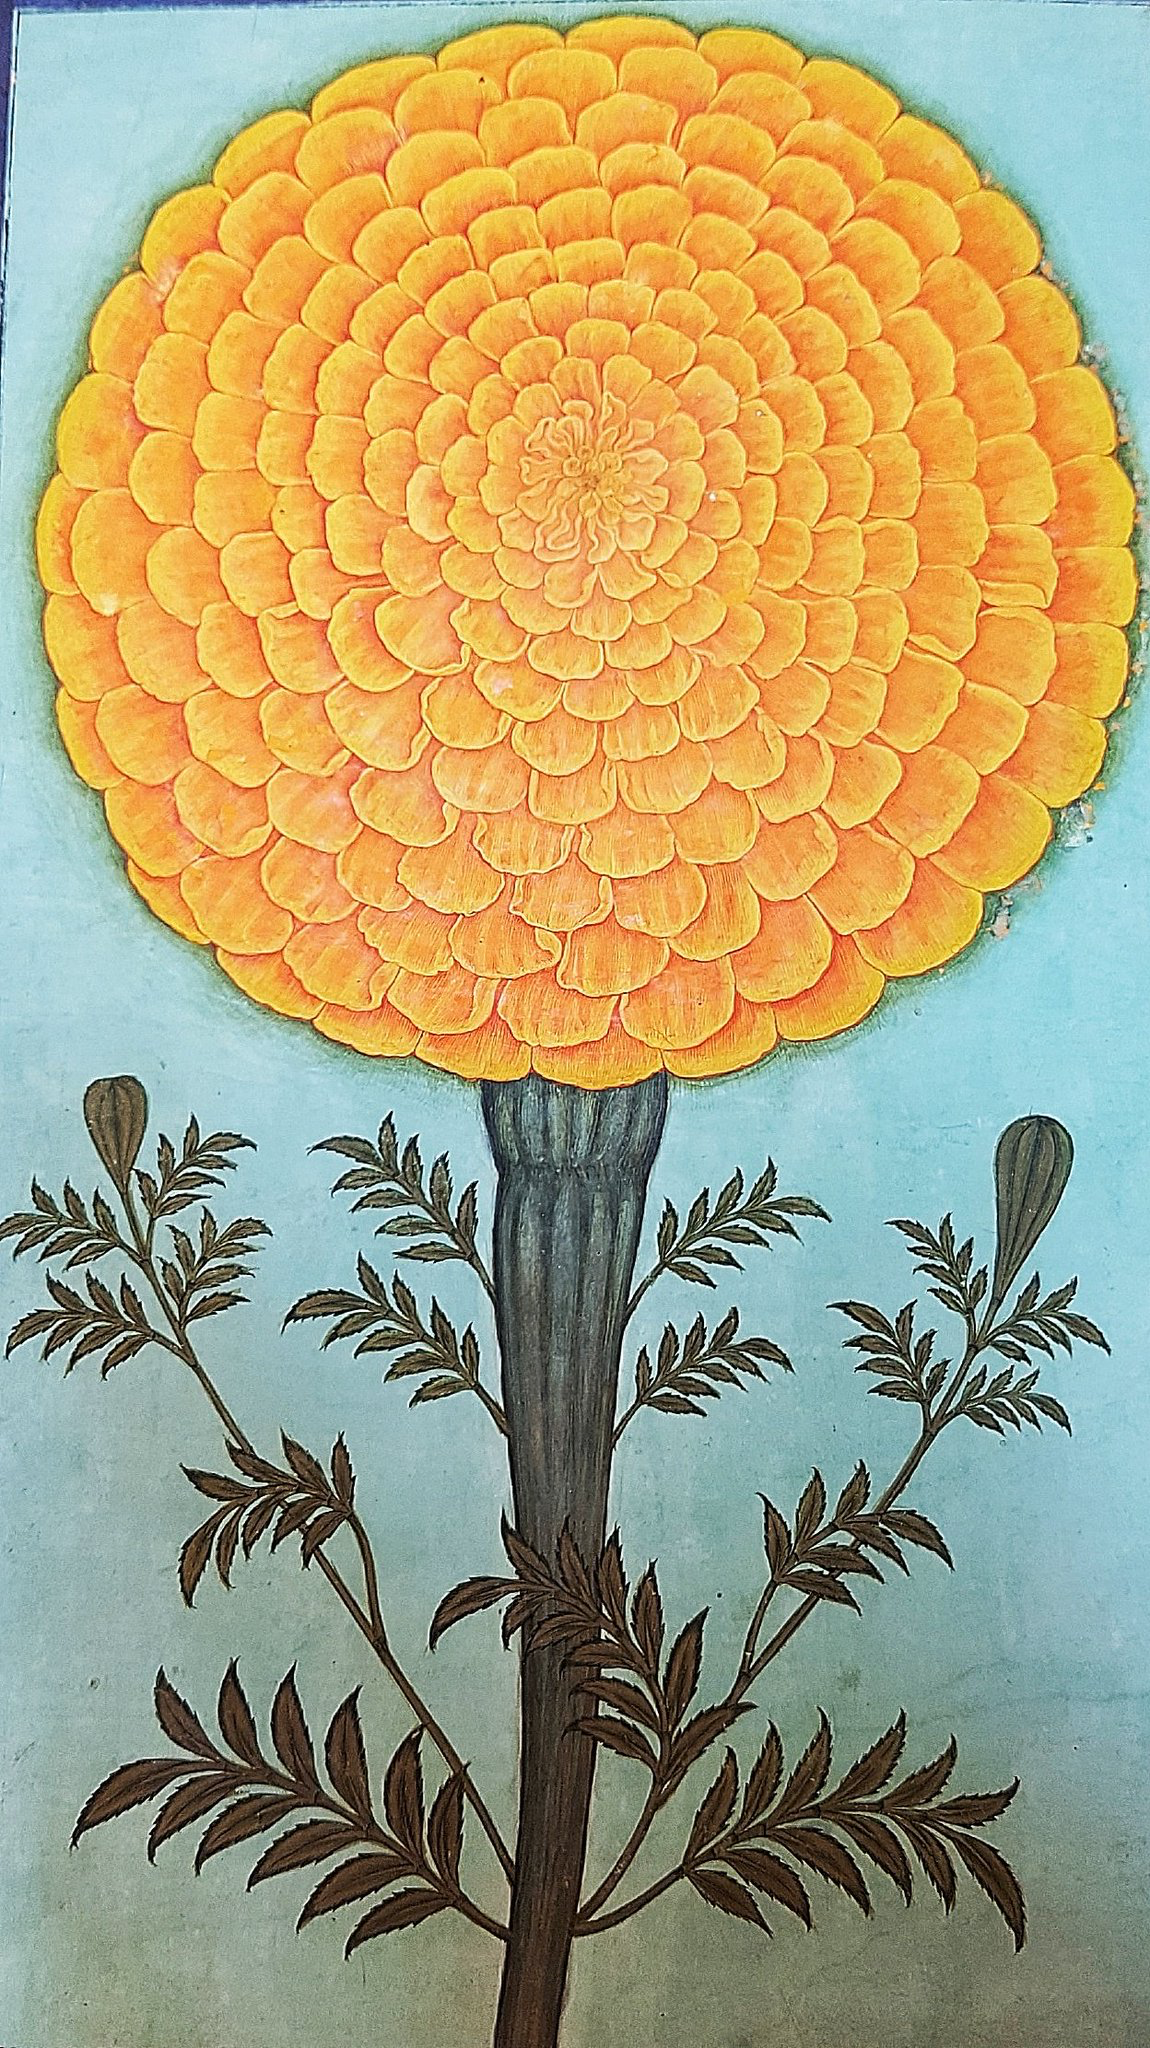 """marigolds and symbolism Marigolds are associated with dia de los muertos, or the day of the dead it is said that their vibrant yellow colors guide spirits into the afterlife the marigold is also called the """"herb of the sun"""", representing passion and even creativity."""